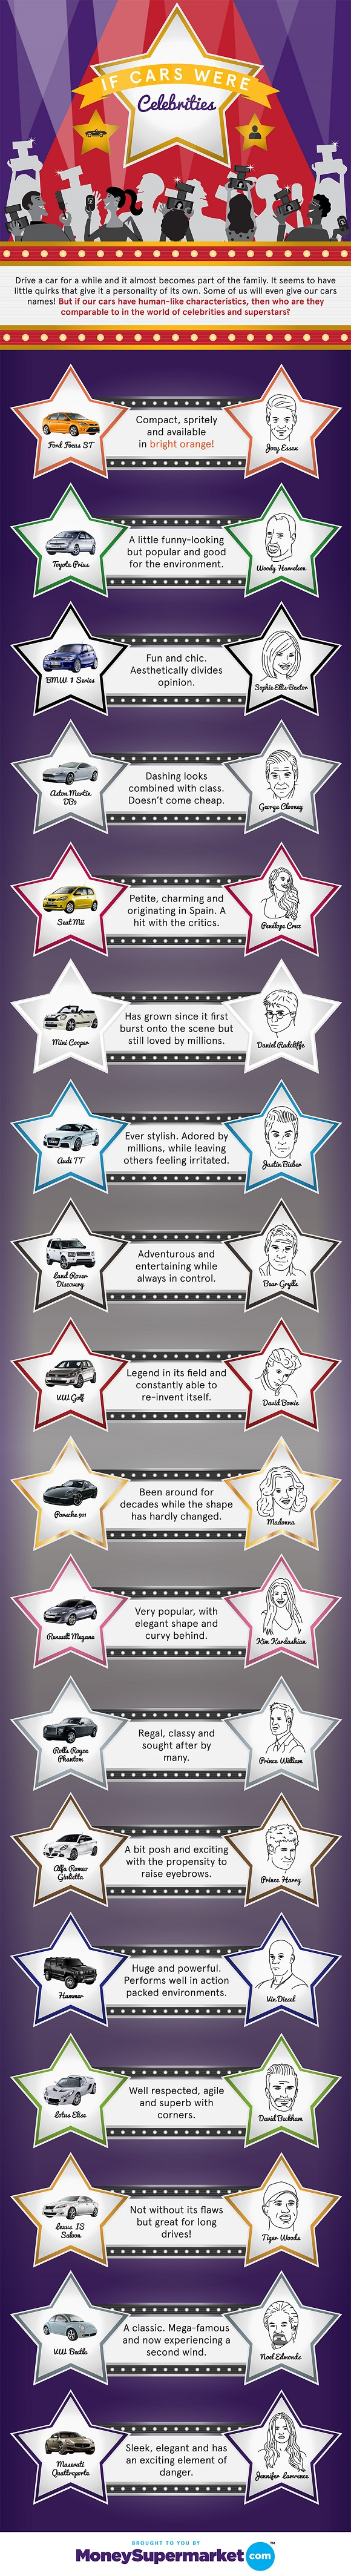 How World's Popular Cars are Compared to Celebrities